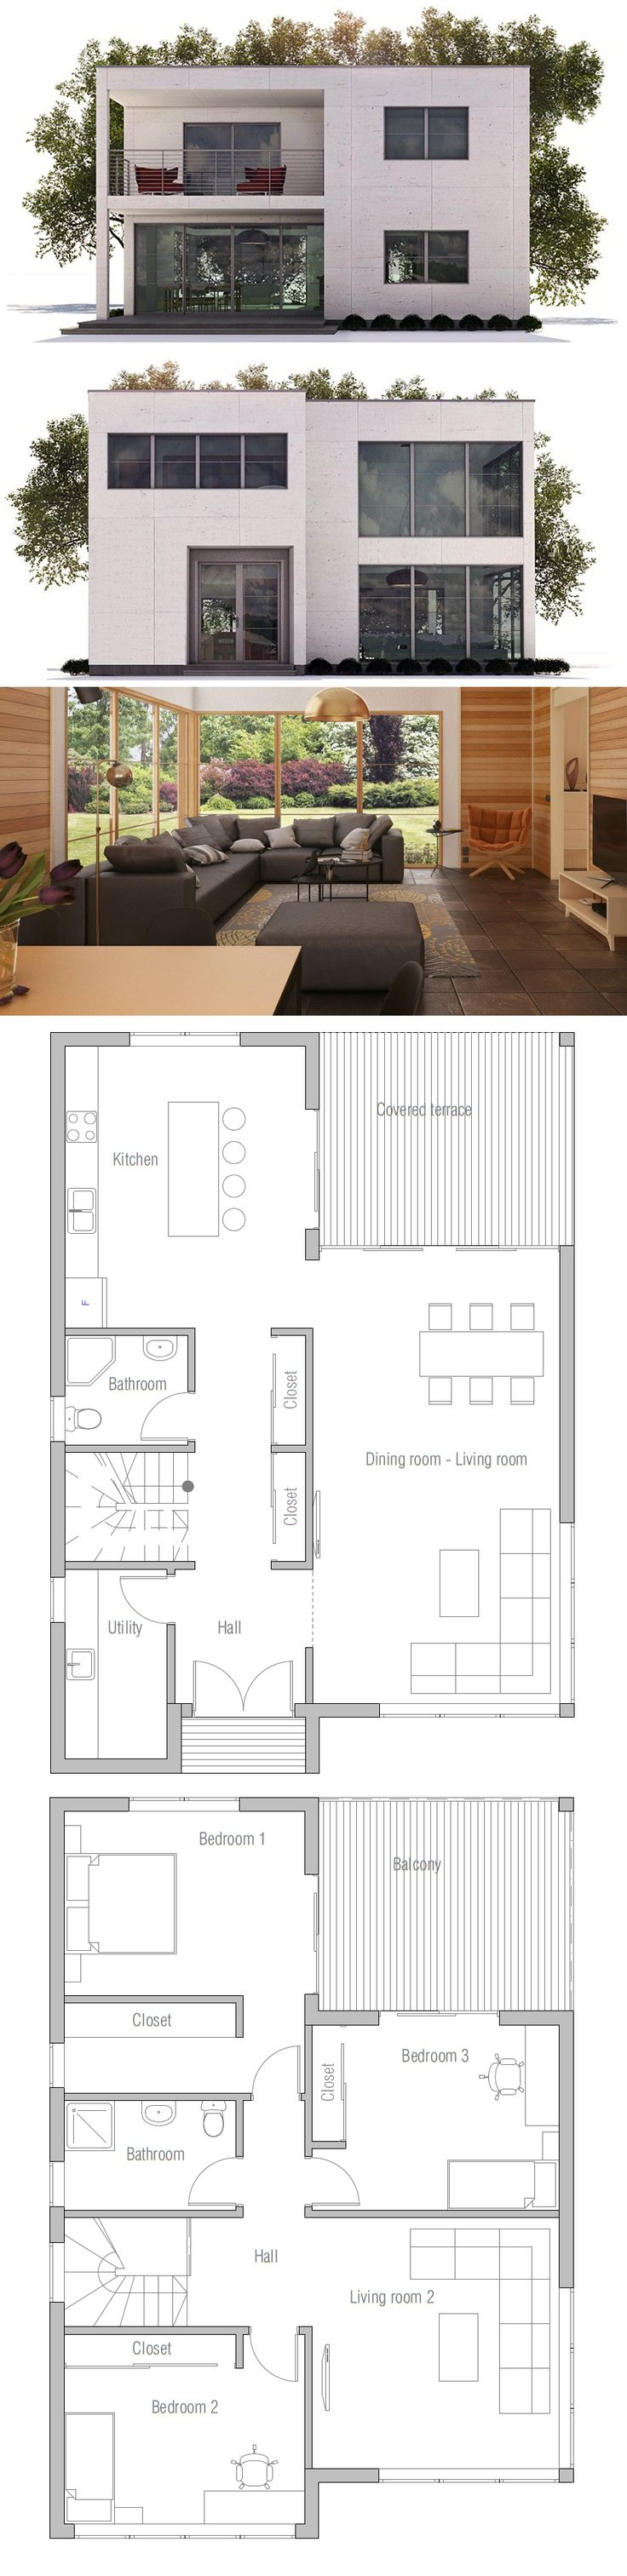 best 25 home plans ideas on pinterest house floor plans affordable home plan